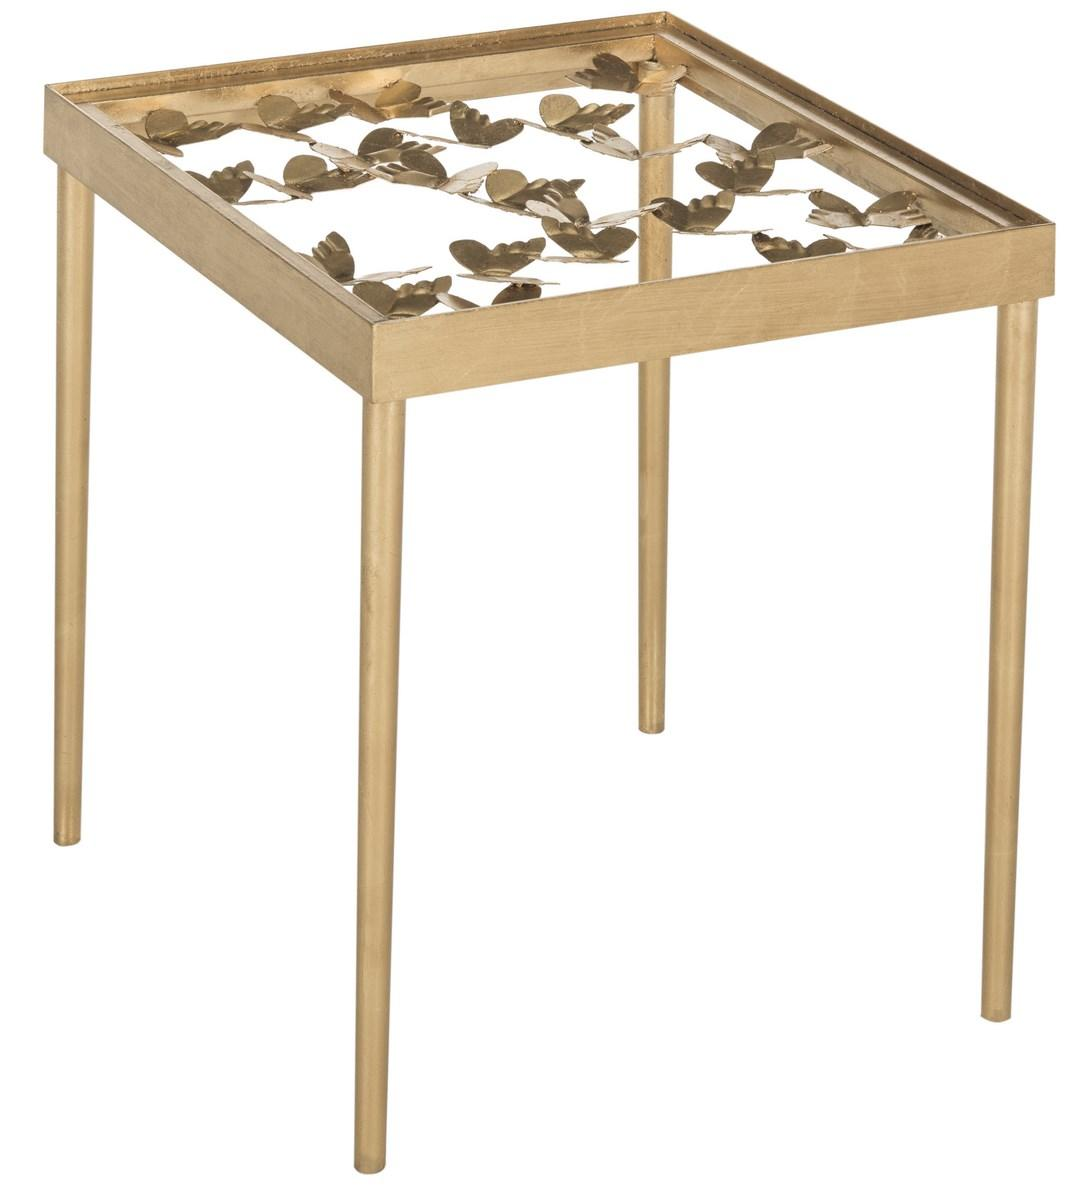 accent tables furniture safavieh side gold table share this product metal carpet threshold decorative mirrors glass chrome top entry solid pine bedroom sofa with baskets target